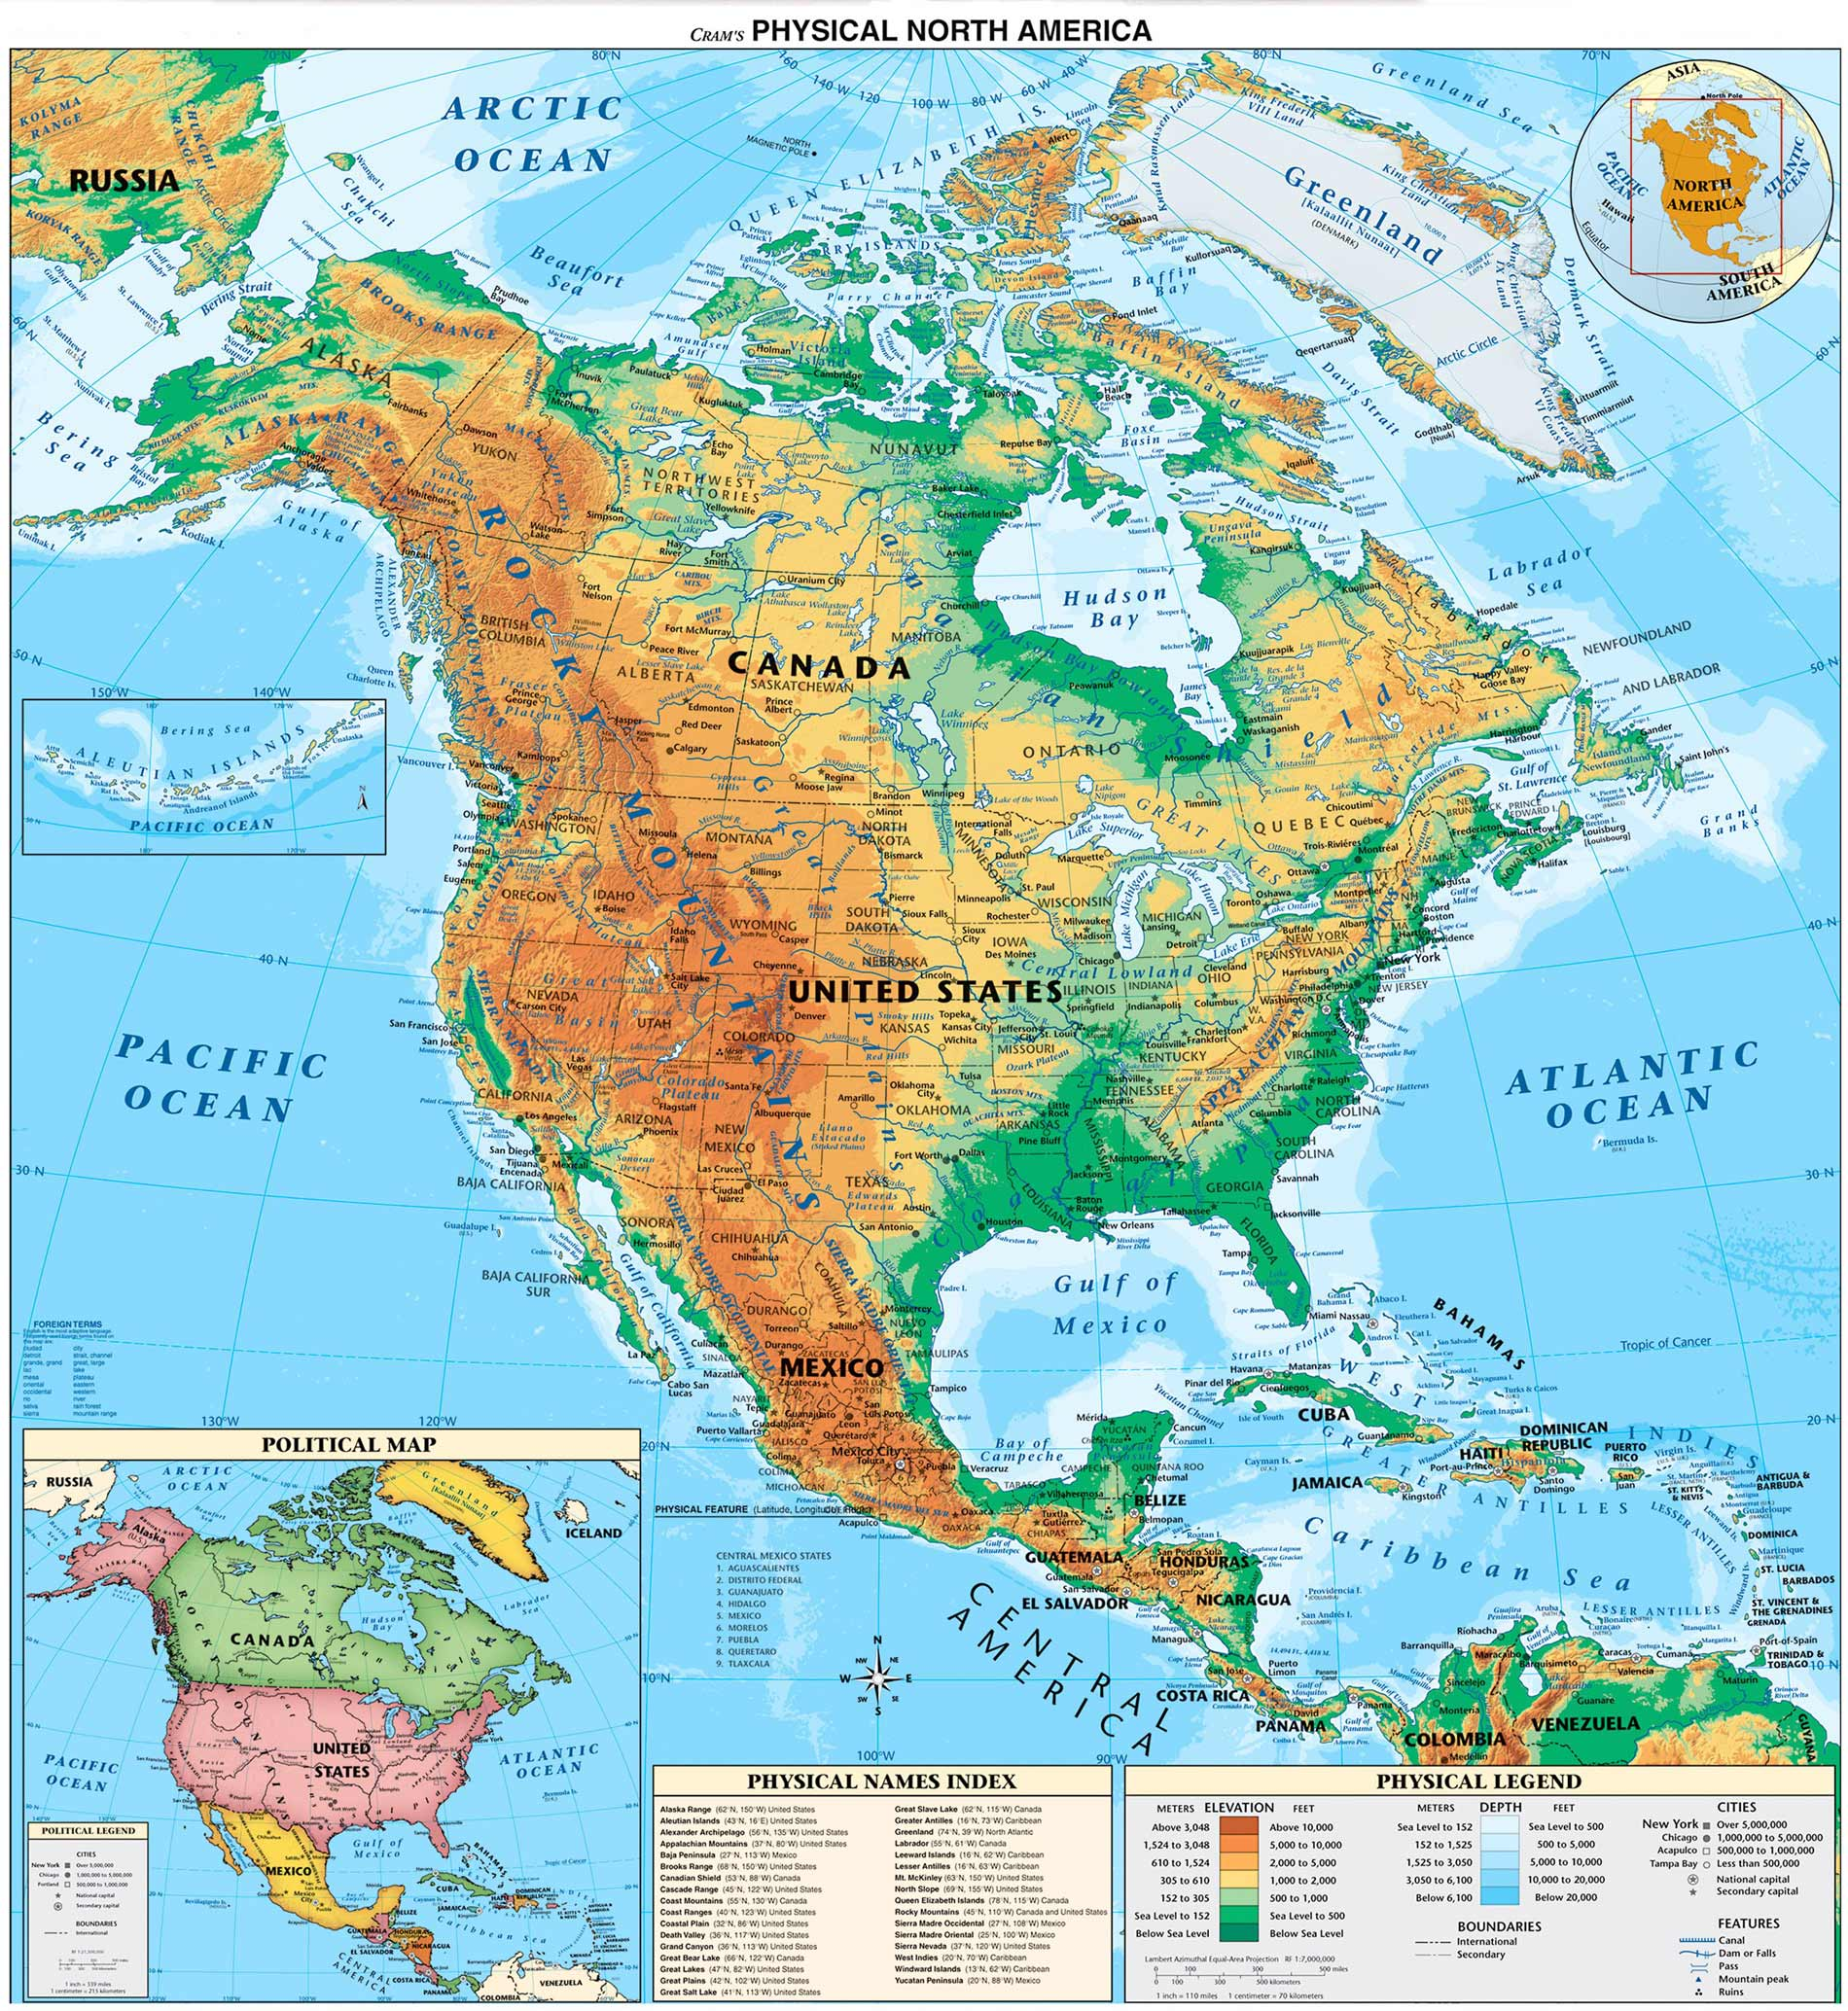 united states of anerica map with Mapa Fisico De America Del Norte on America Maps With Cities together with Future Of North America moreover Us Map Wallpaper furthermore Mapa Fisico De America Del Norte in addition Geography American States 1068.